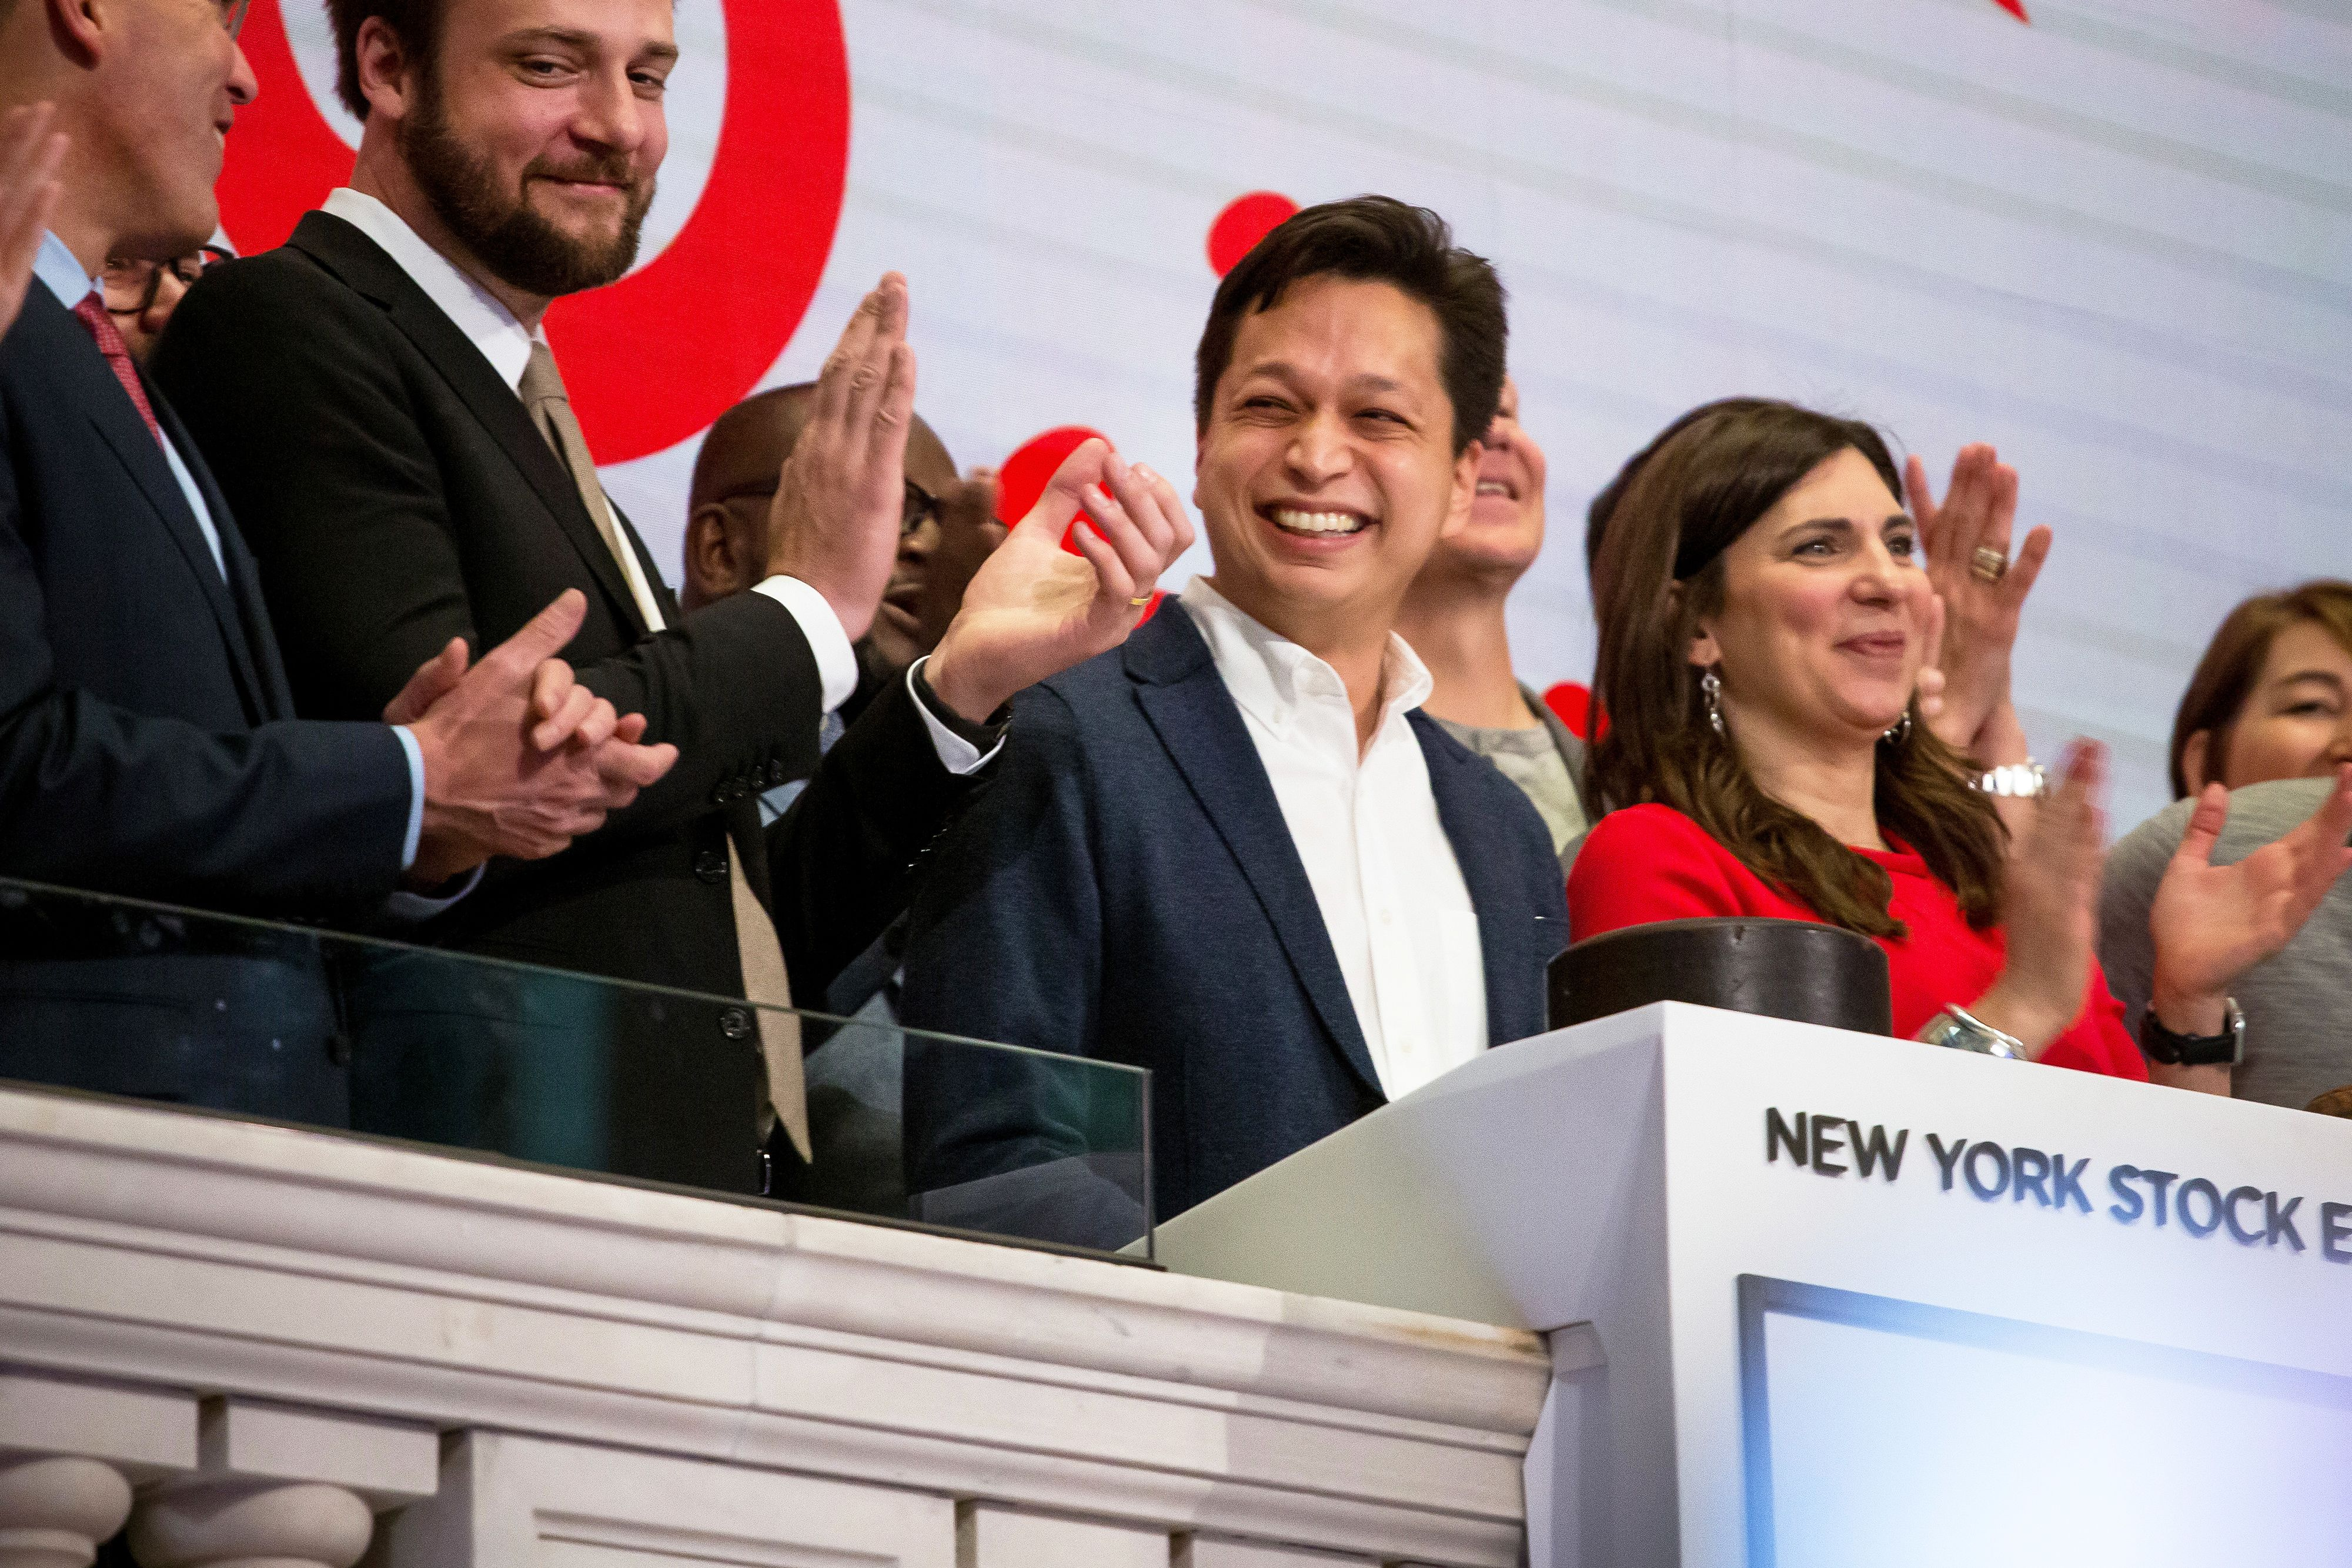 Pinterest up as much as 12% as post-IPO rally continues